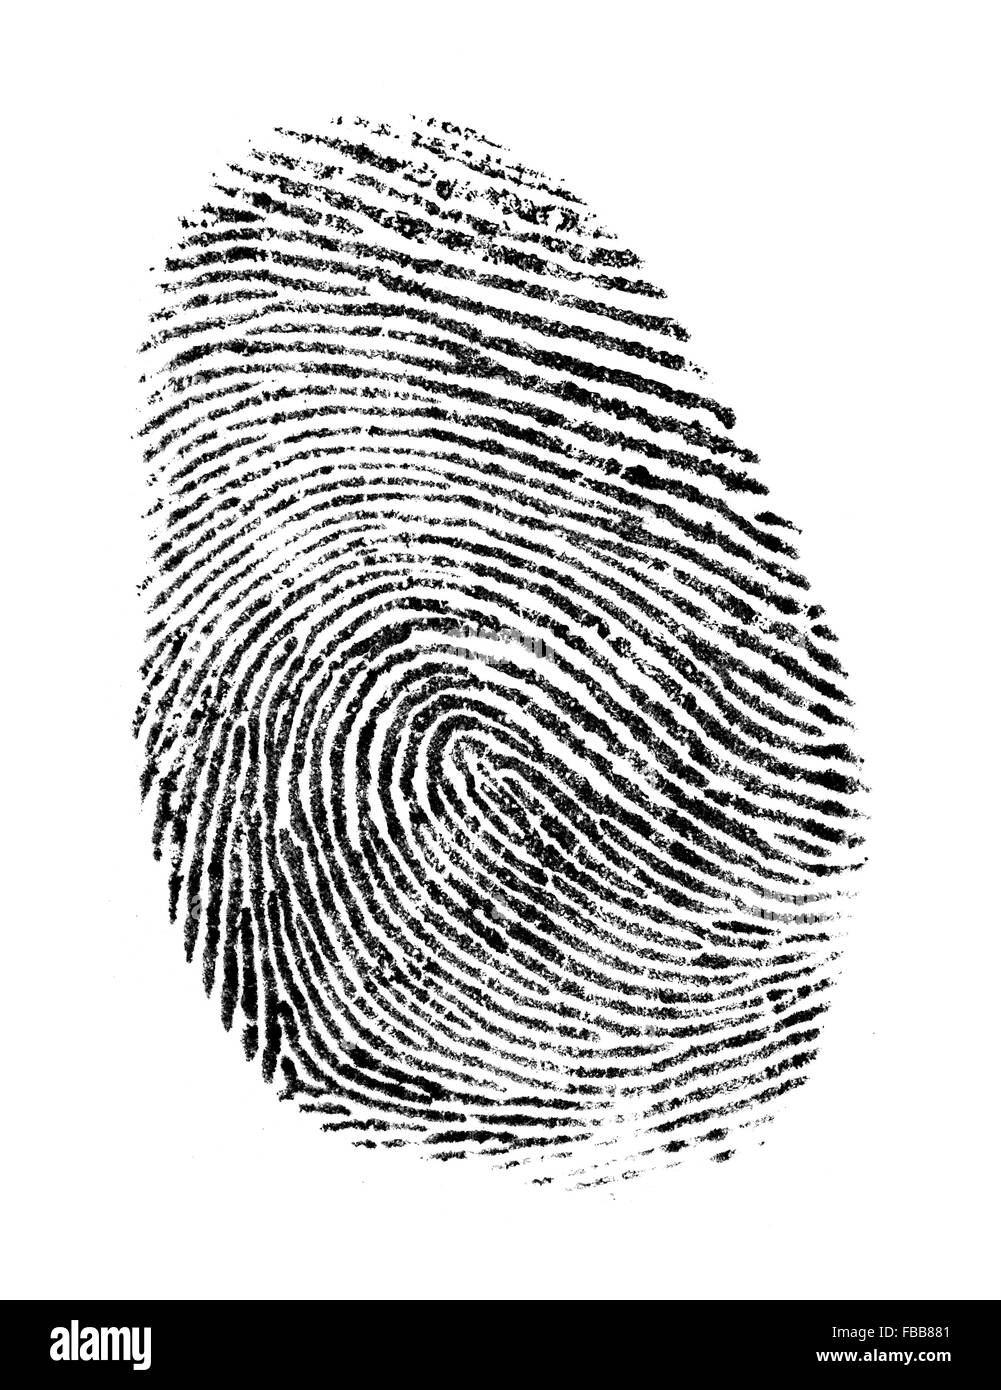 Black Ink Fingerprint Isolated on a White Background. - Stock Image